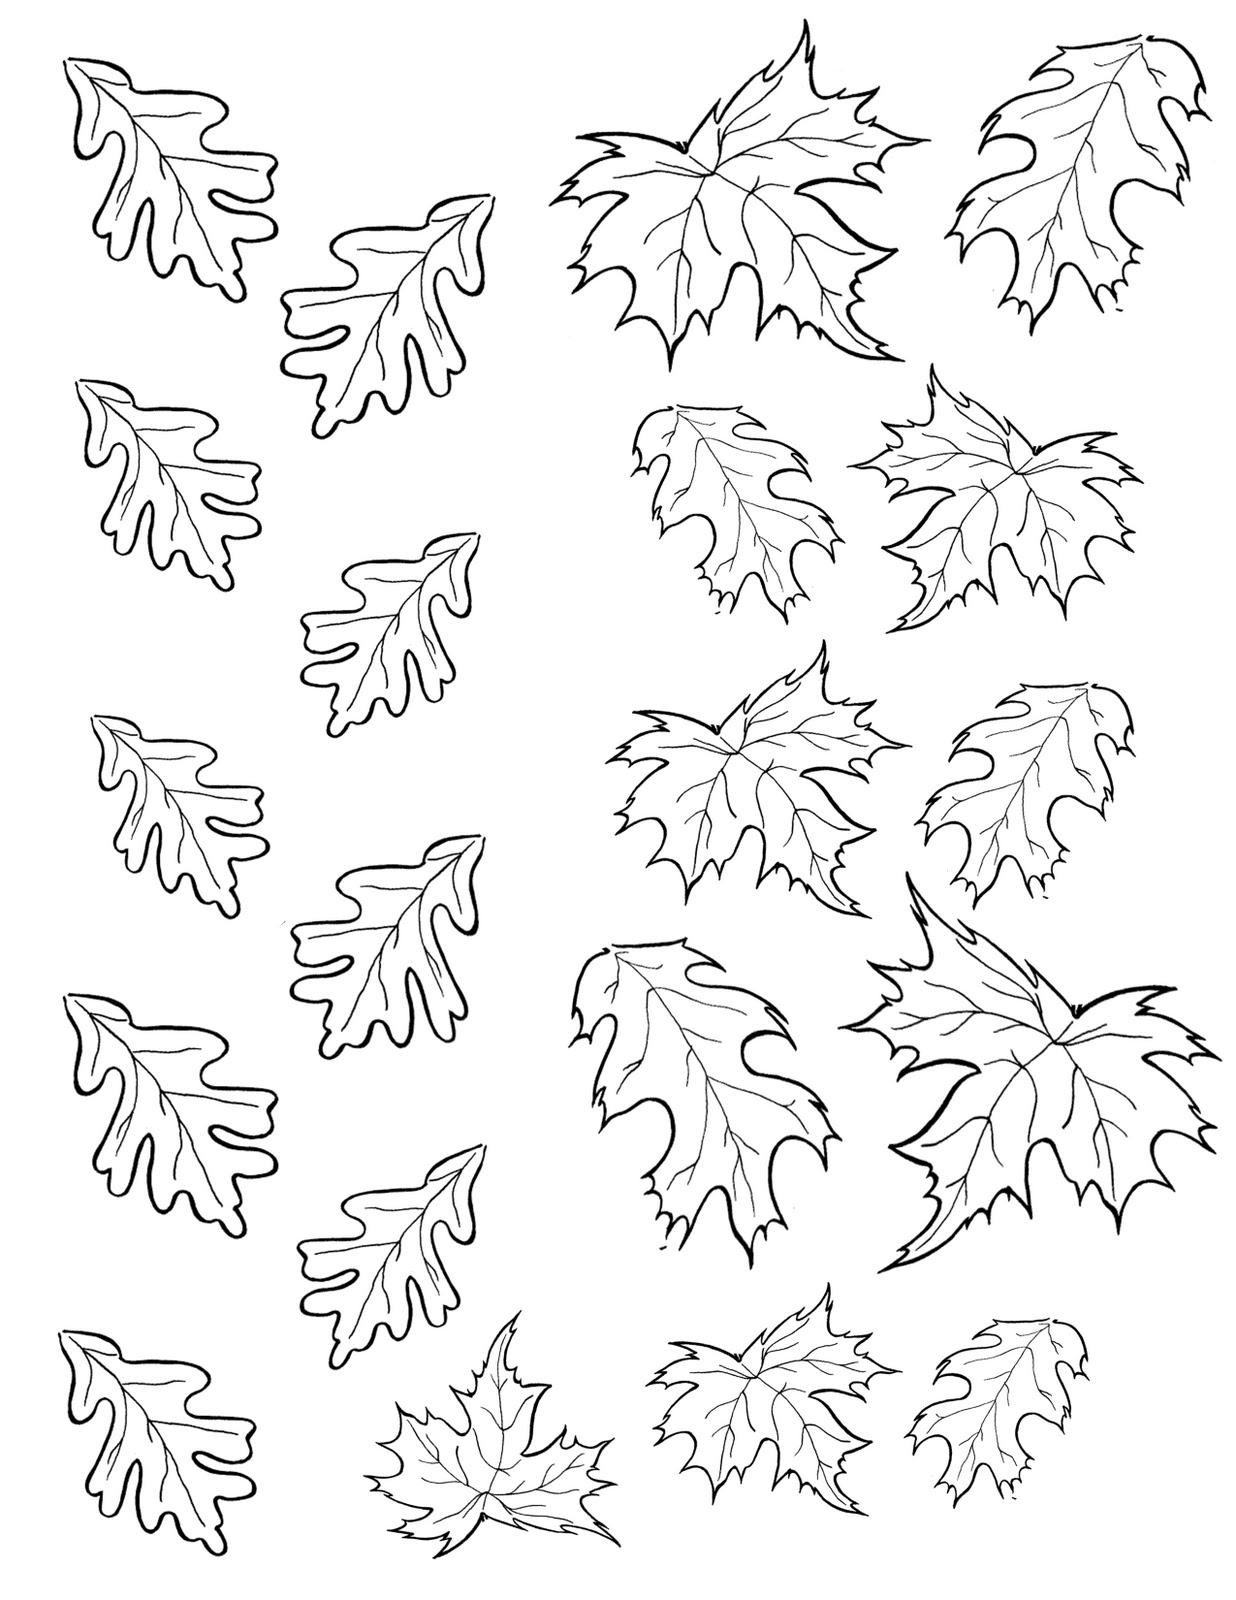 Leaf Drawing Template At Getdrawings Free For Personal Use